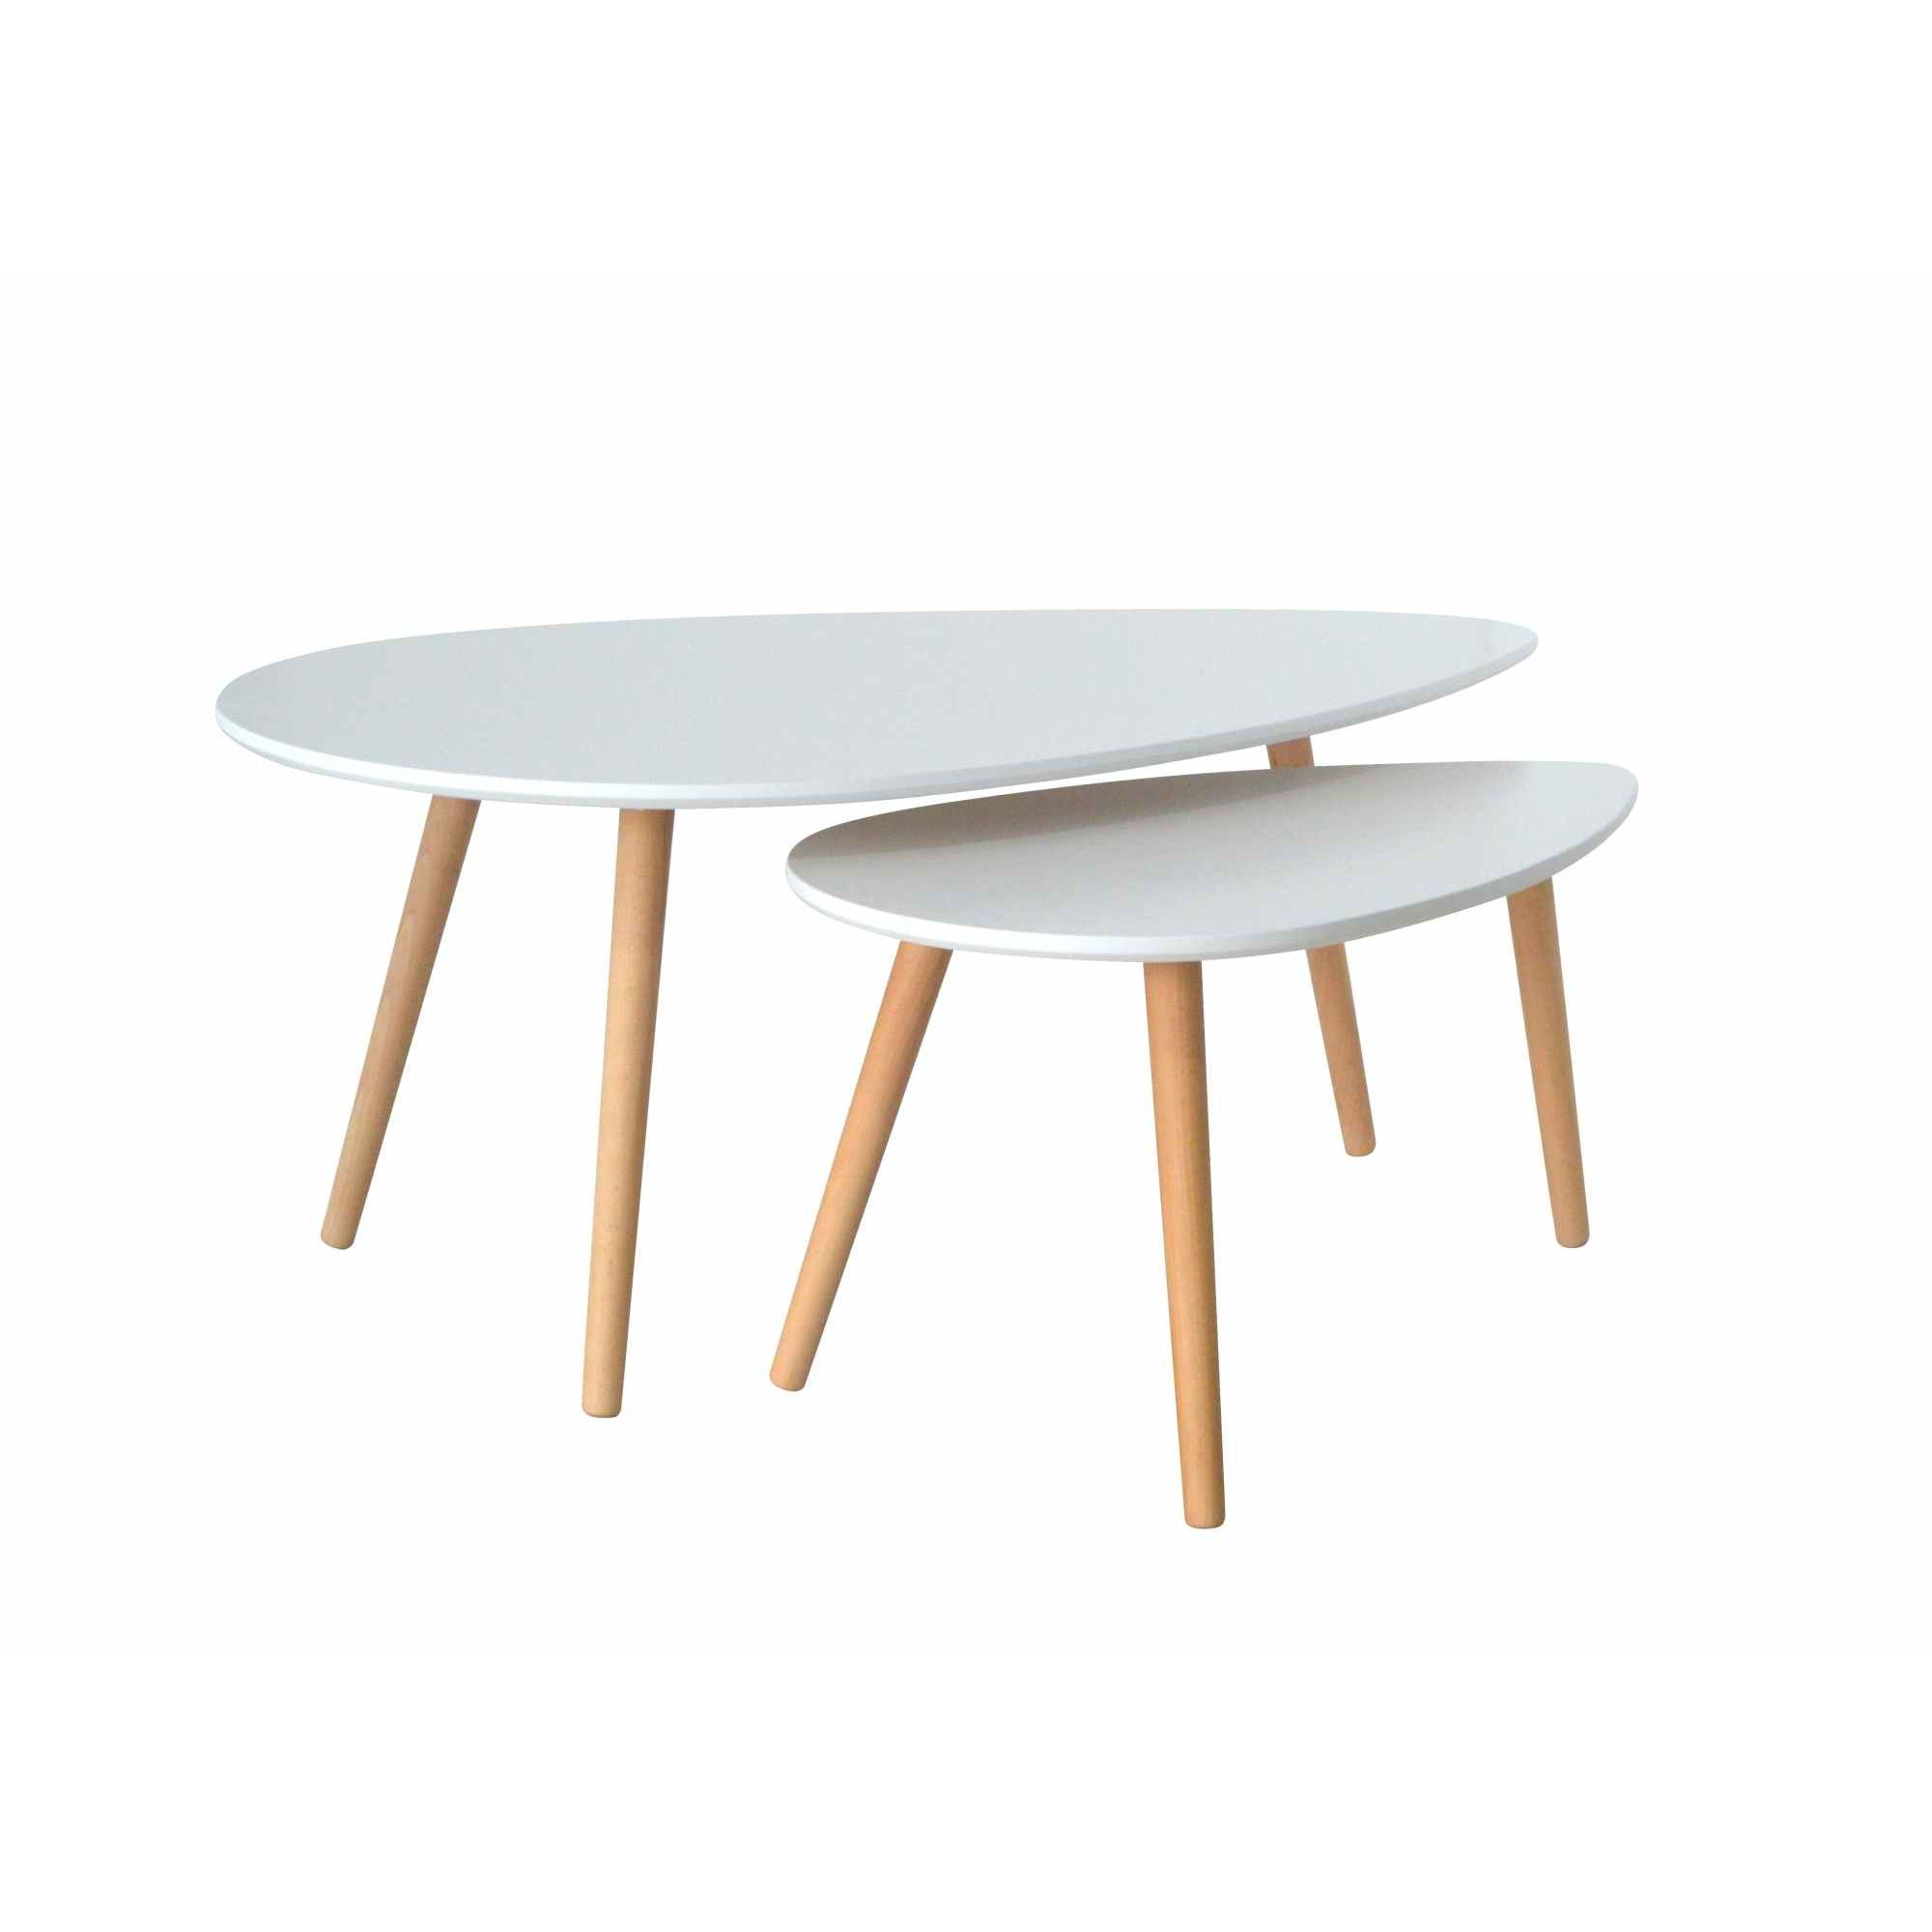 Deco in paris table basse scandinave blanc avesta avesta for Table basse scandinave auchan